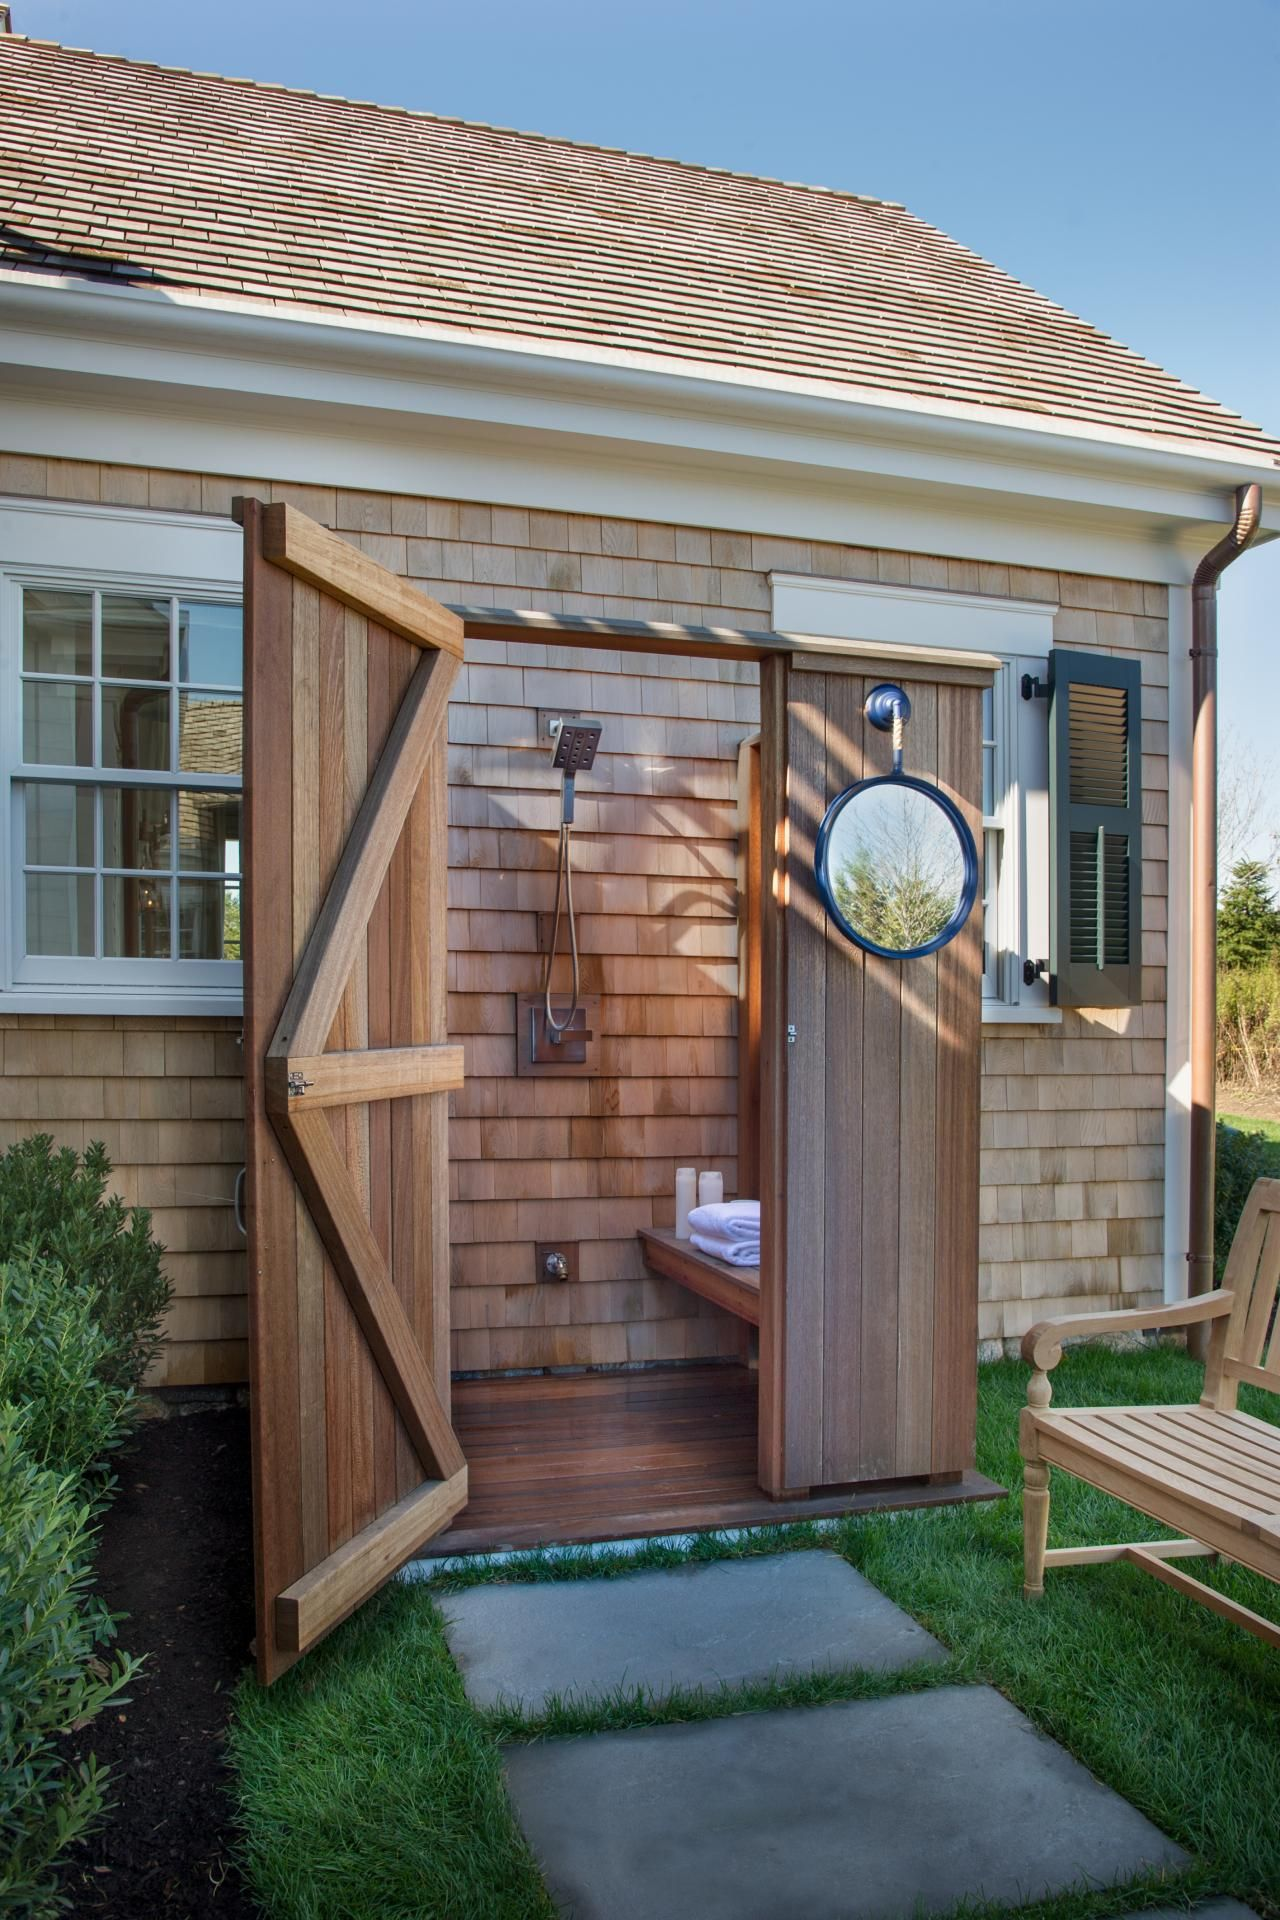 10 simple decorating ideas from the hgtv dream home for Outdoor shower floor ideas